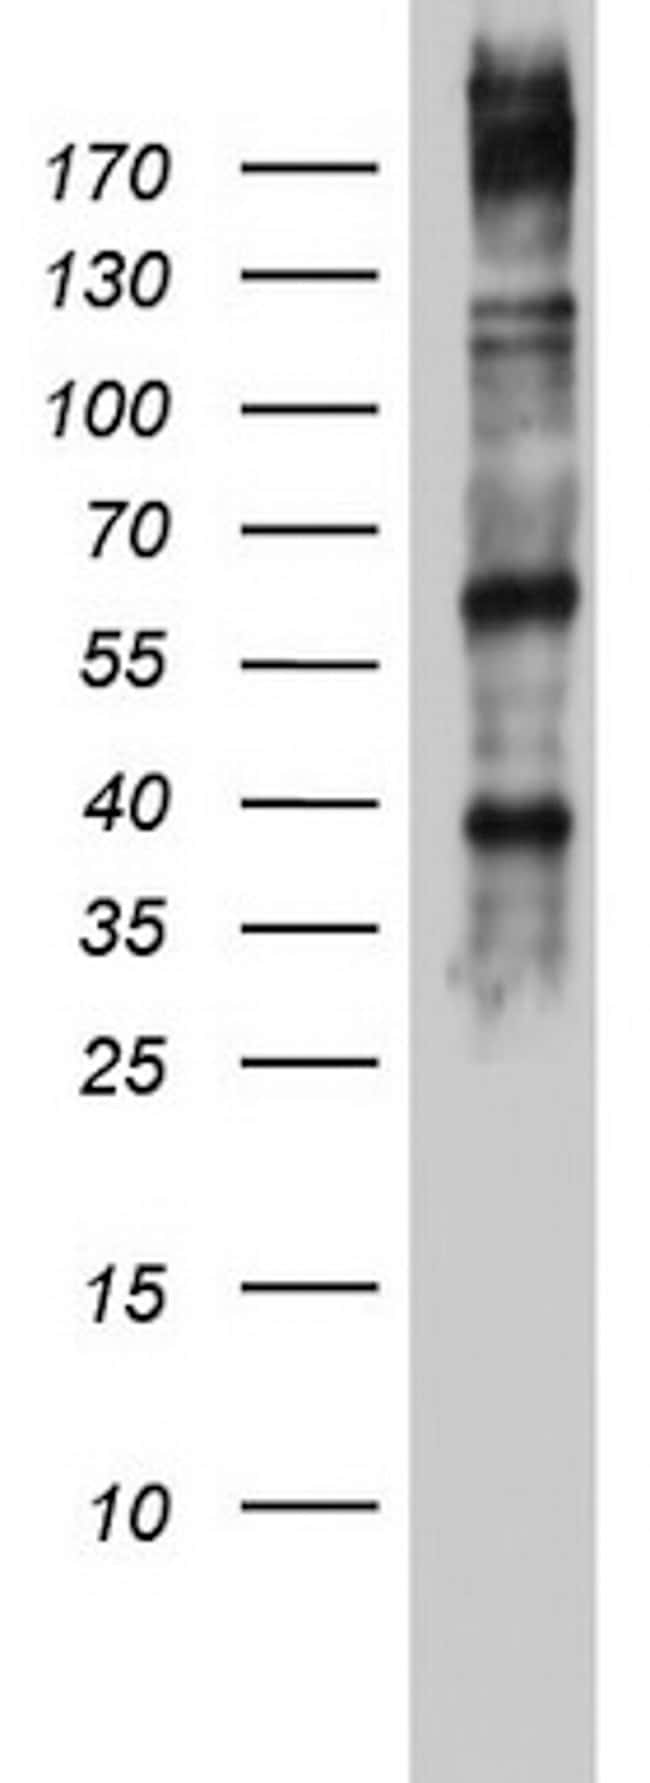 DICER1 Antibody in Western Blot (WB)